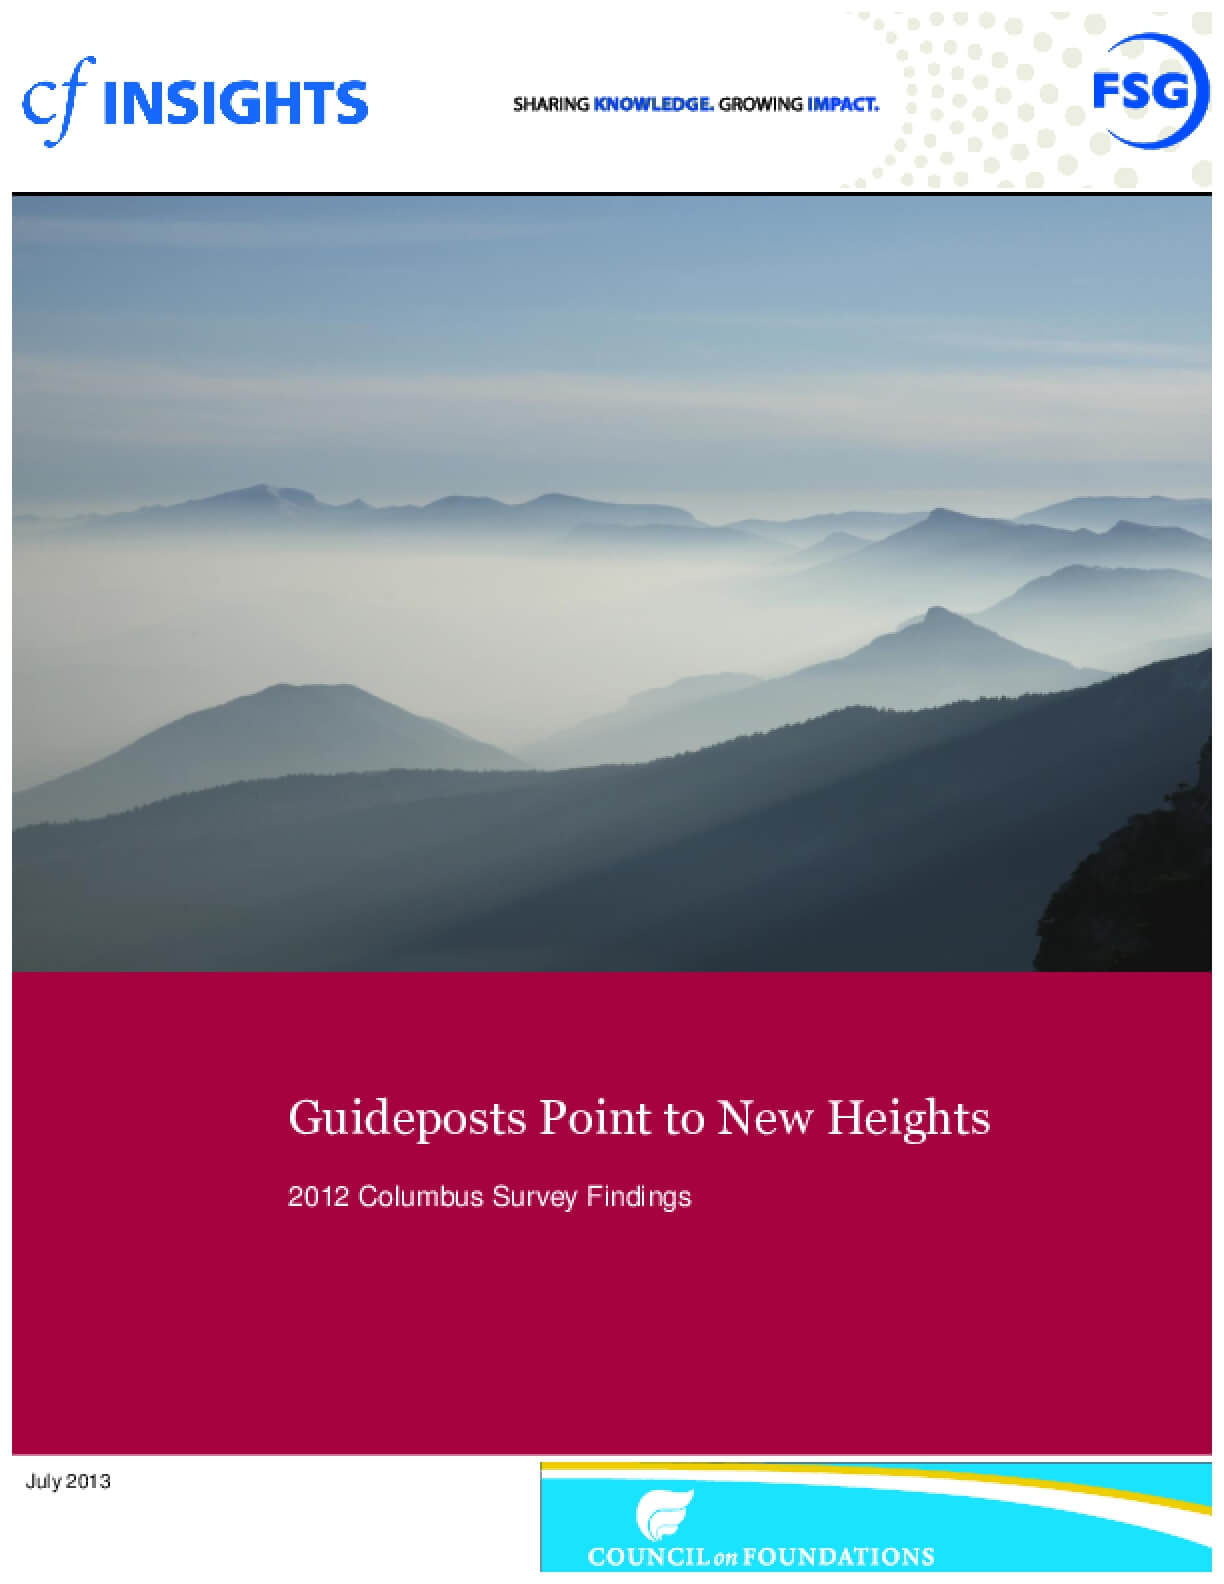 2012 Columbus Survey Results: Guideposts Point to New Heights